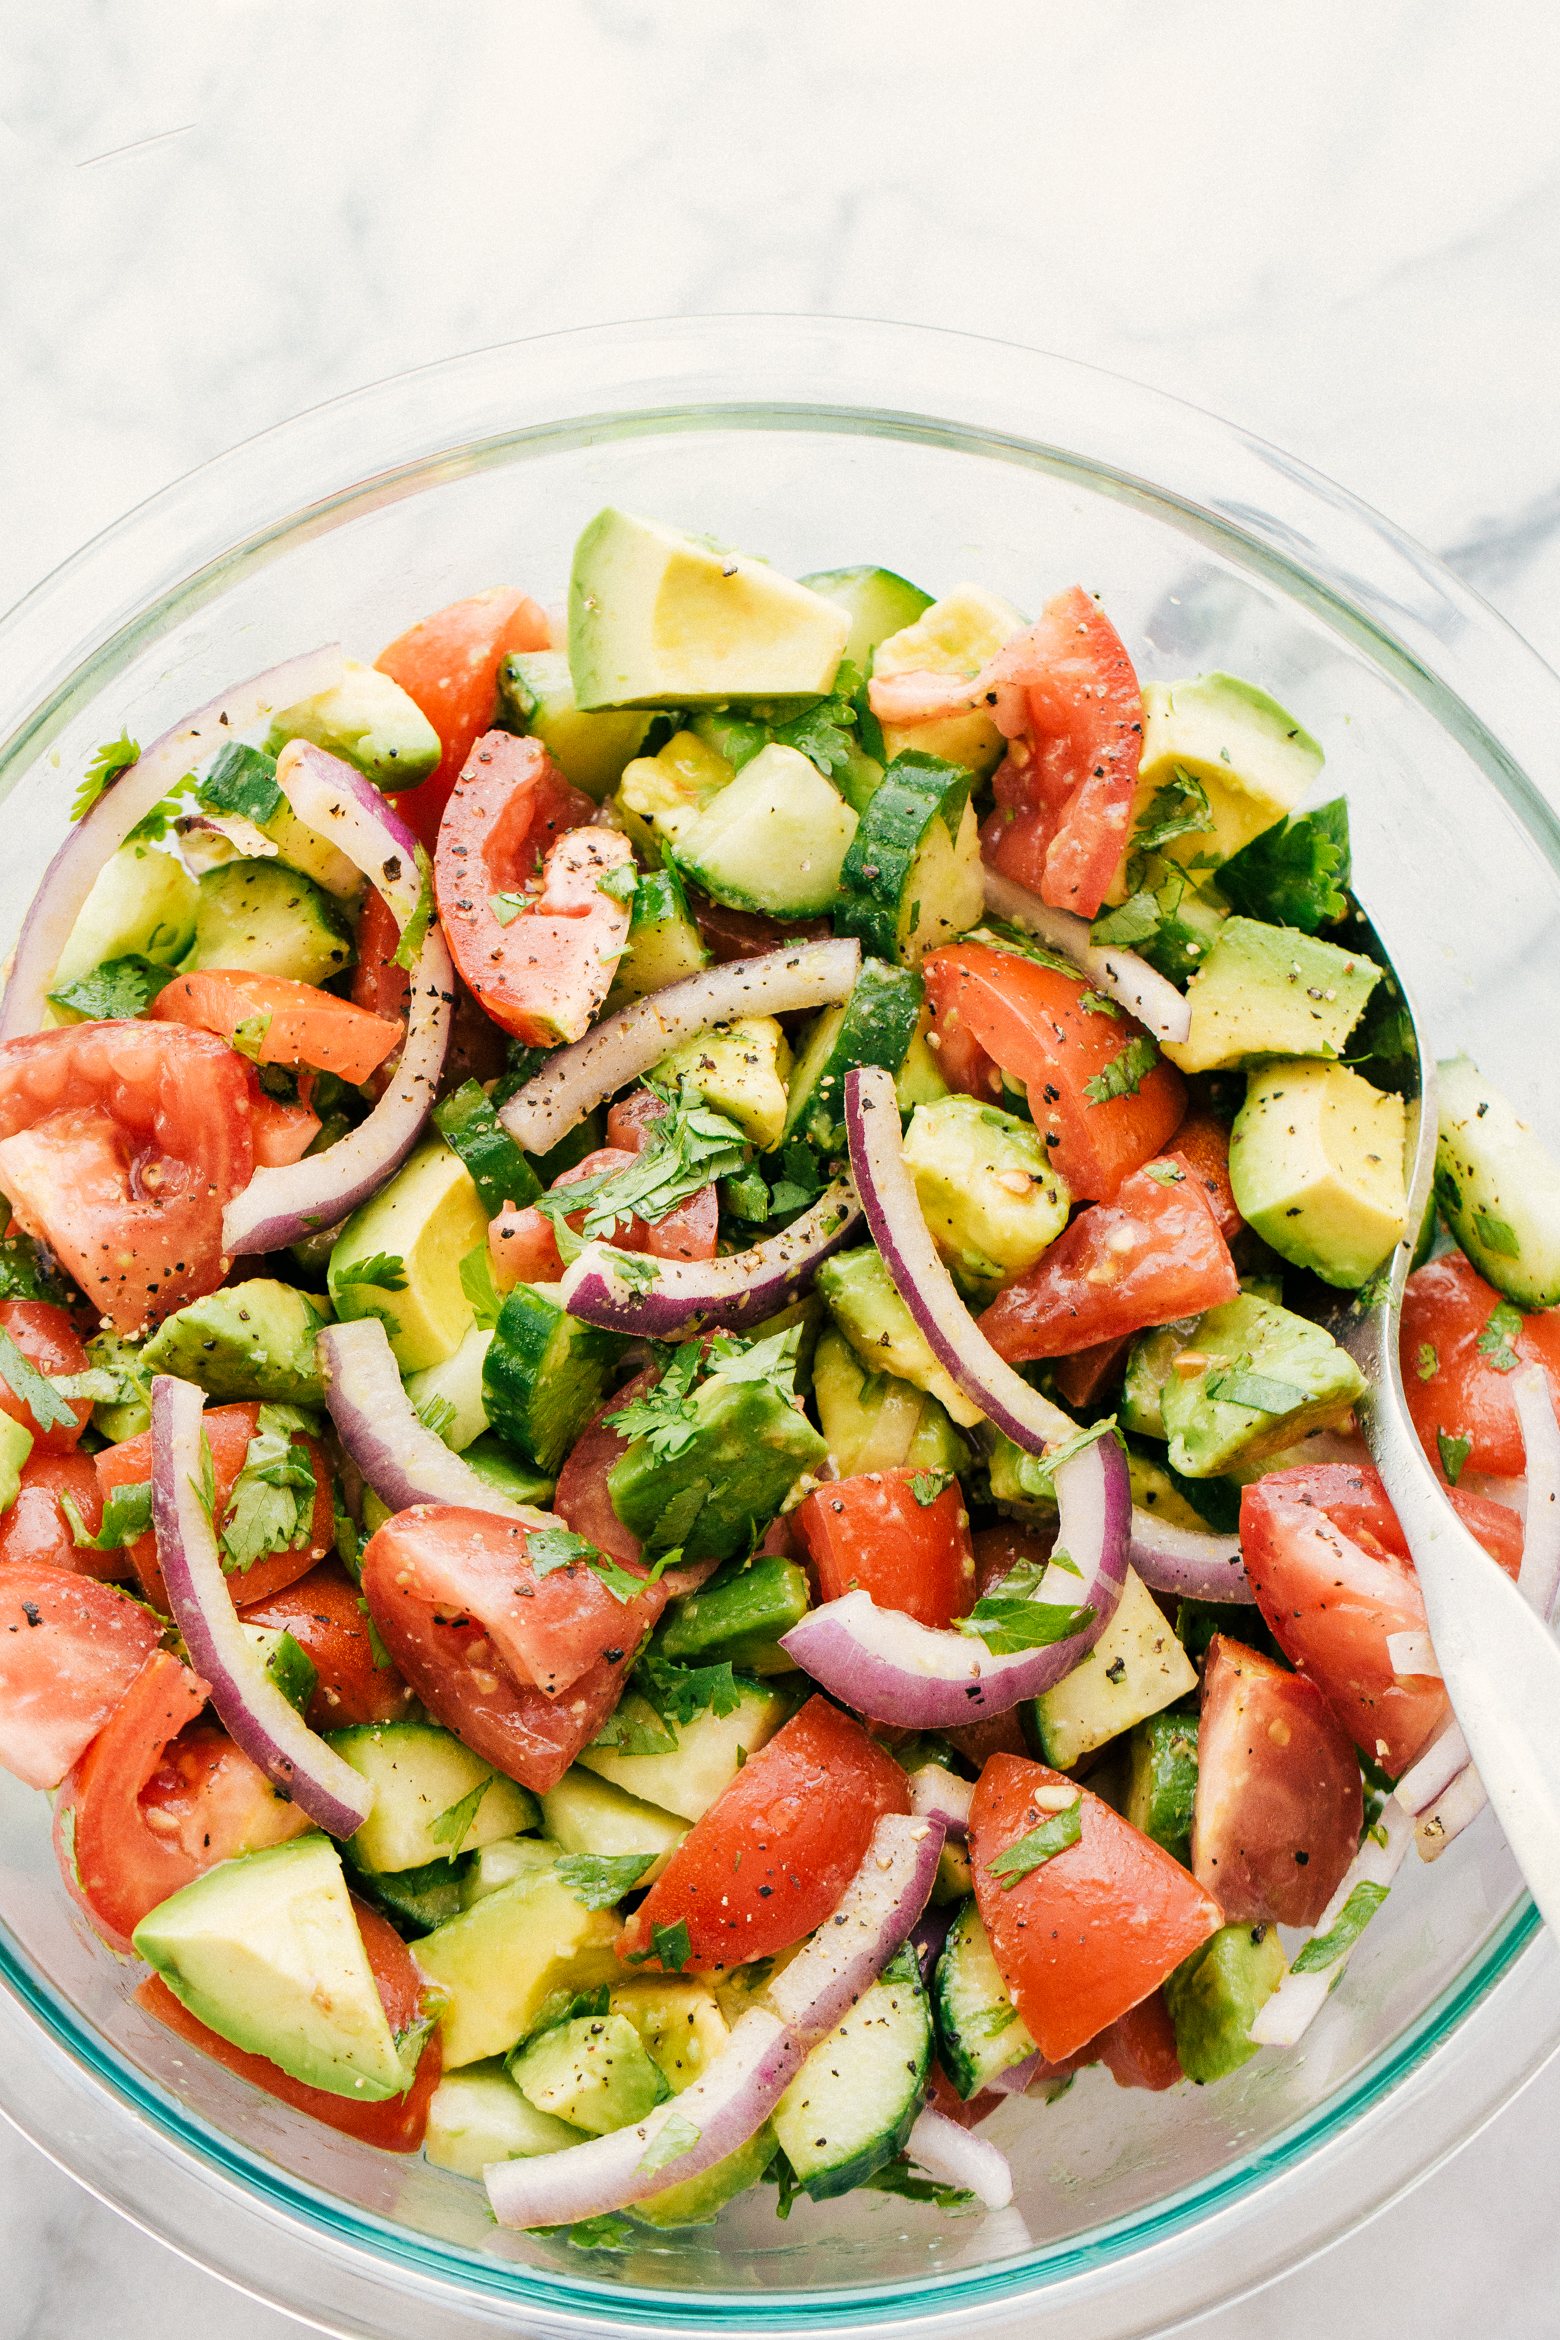 avocado tomato cucumber salad in a clear bowl with a spoon for serving.